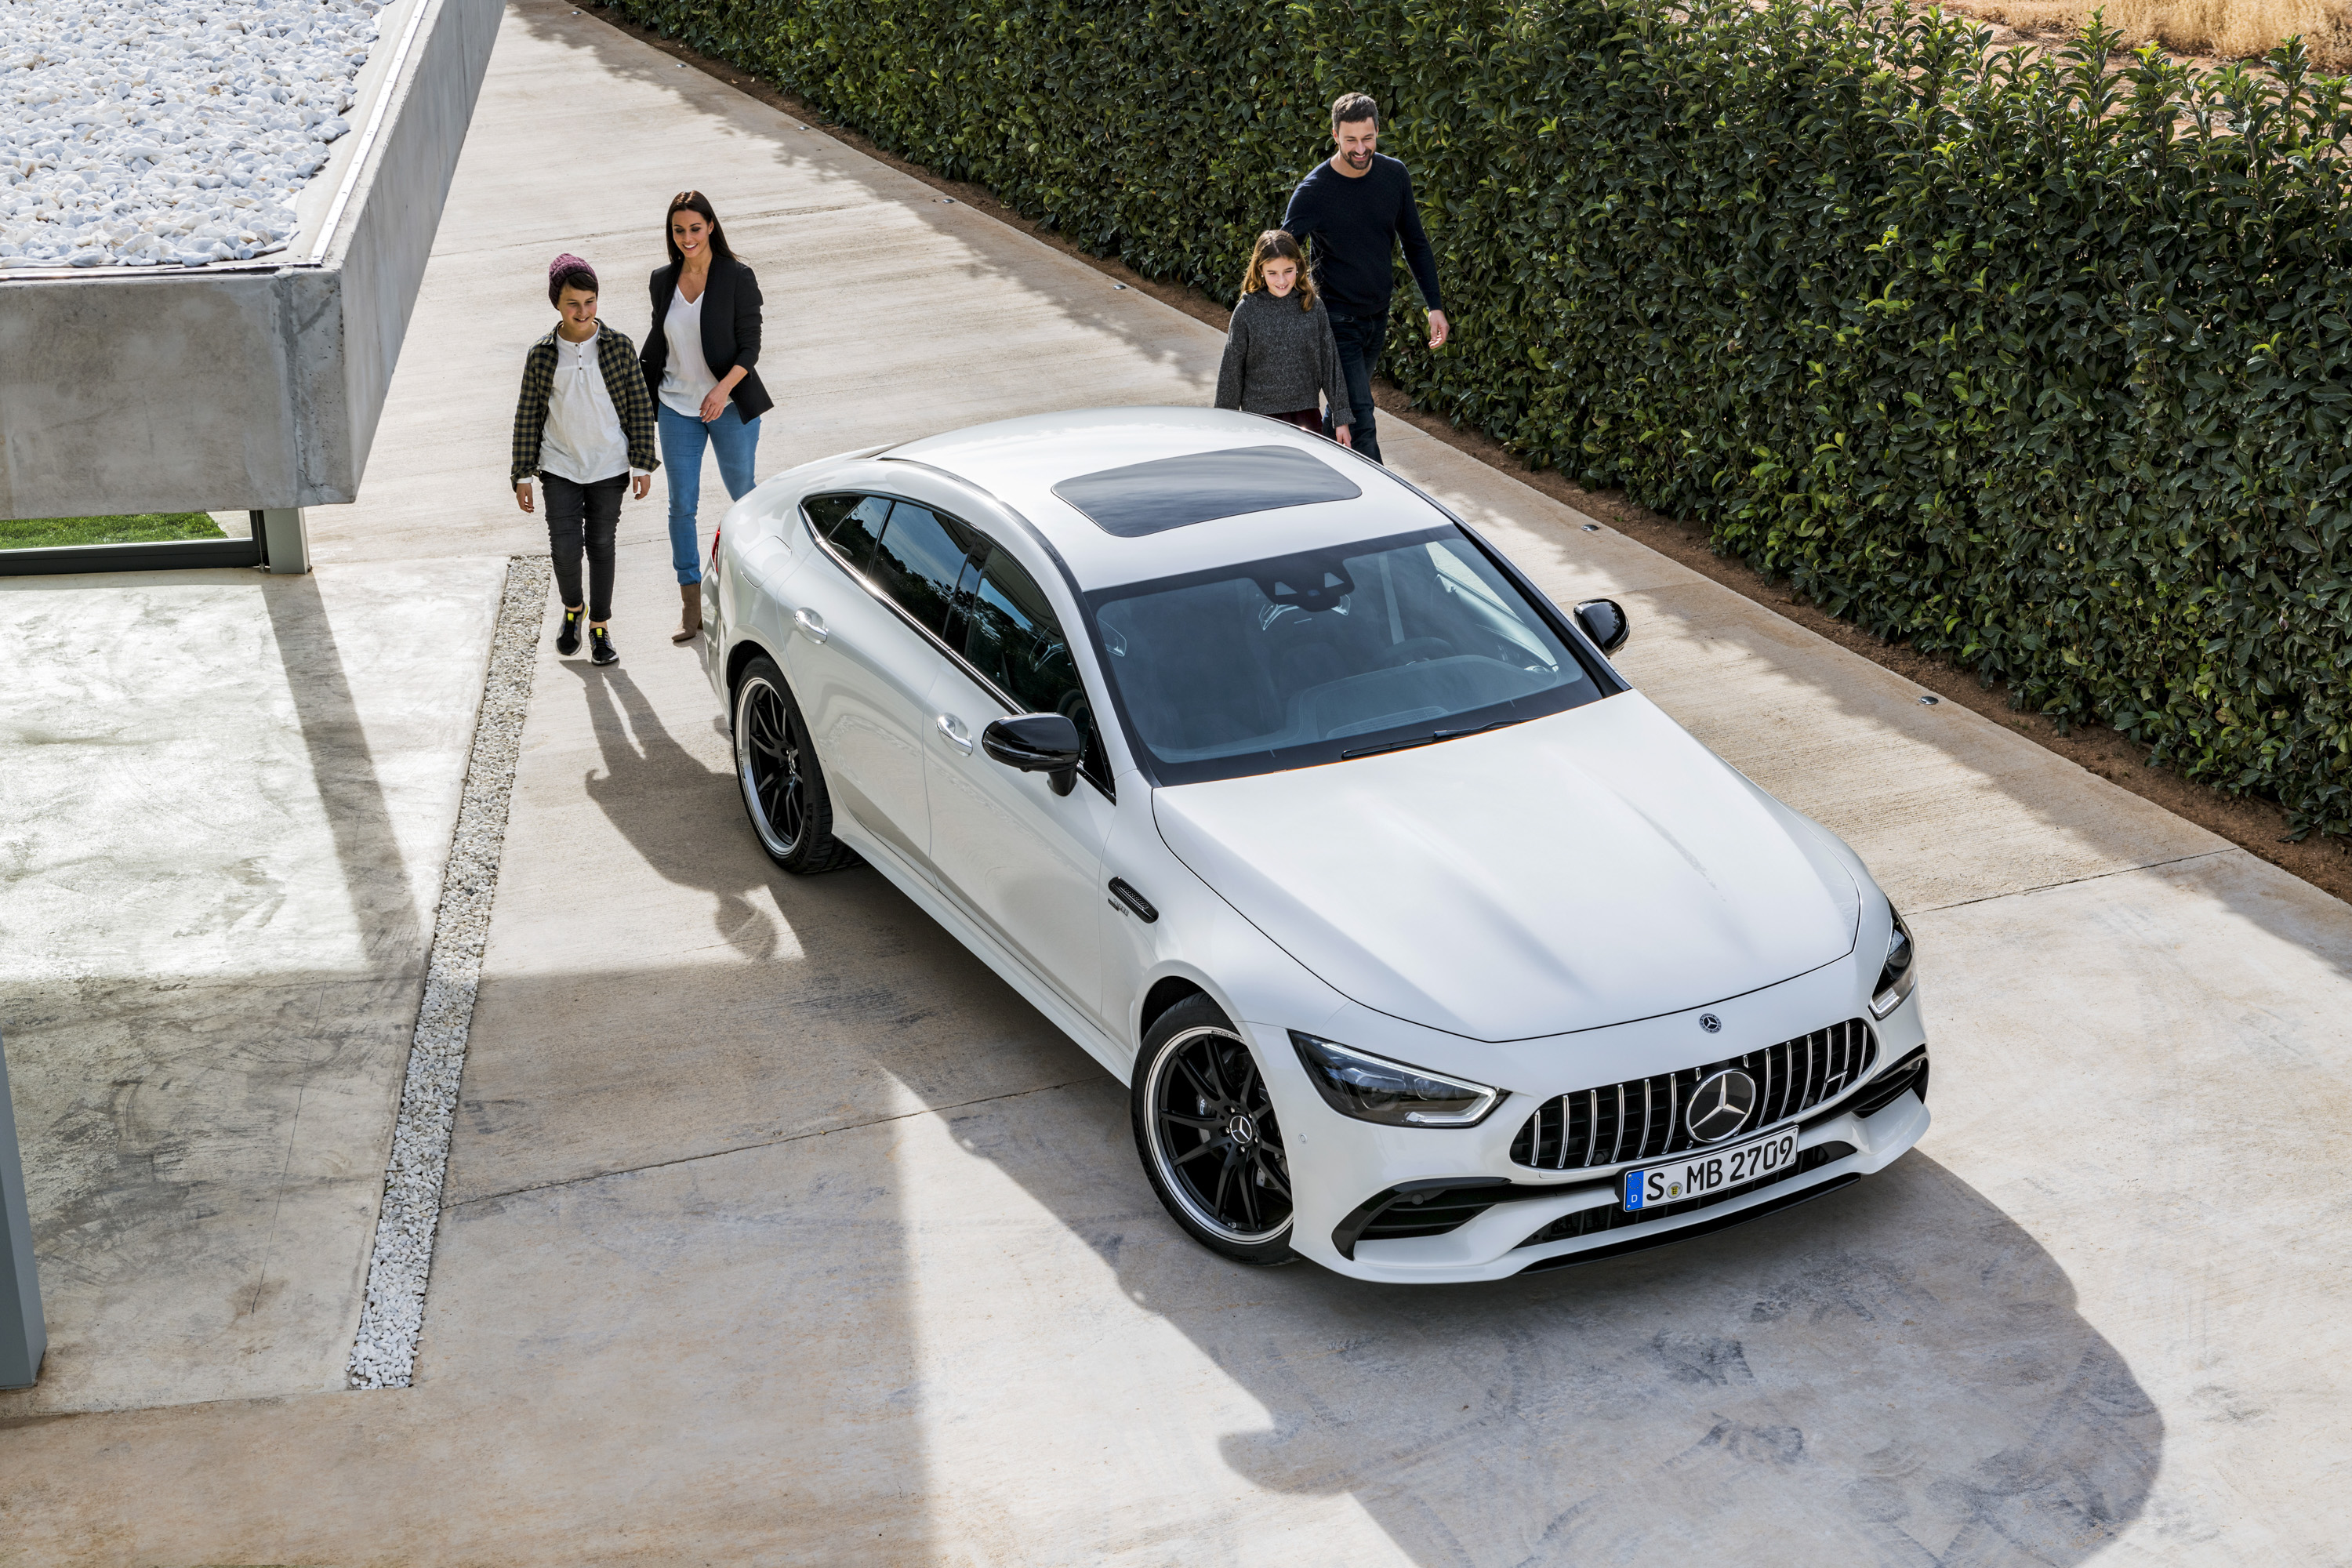 The Mercedes Amg Gt 4 Door Coupe Is Here And Its Basically A Cls Go Back Gallery For Cool Circuit Board Design With More Power Top Speed